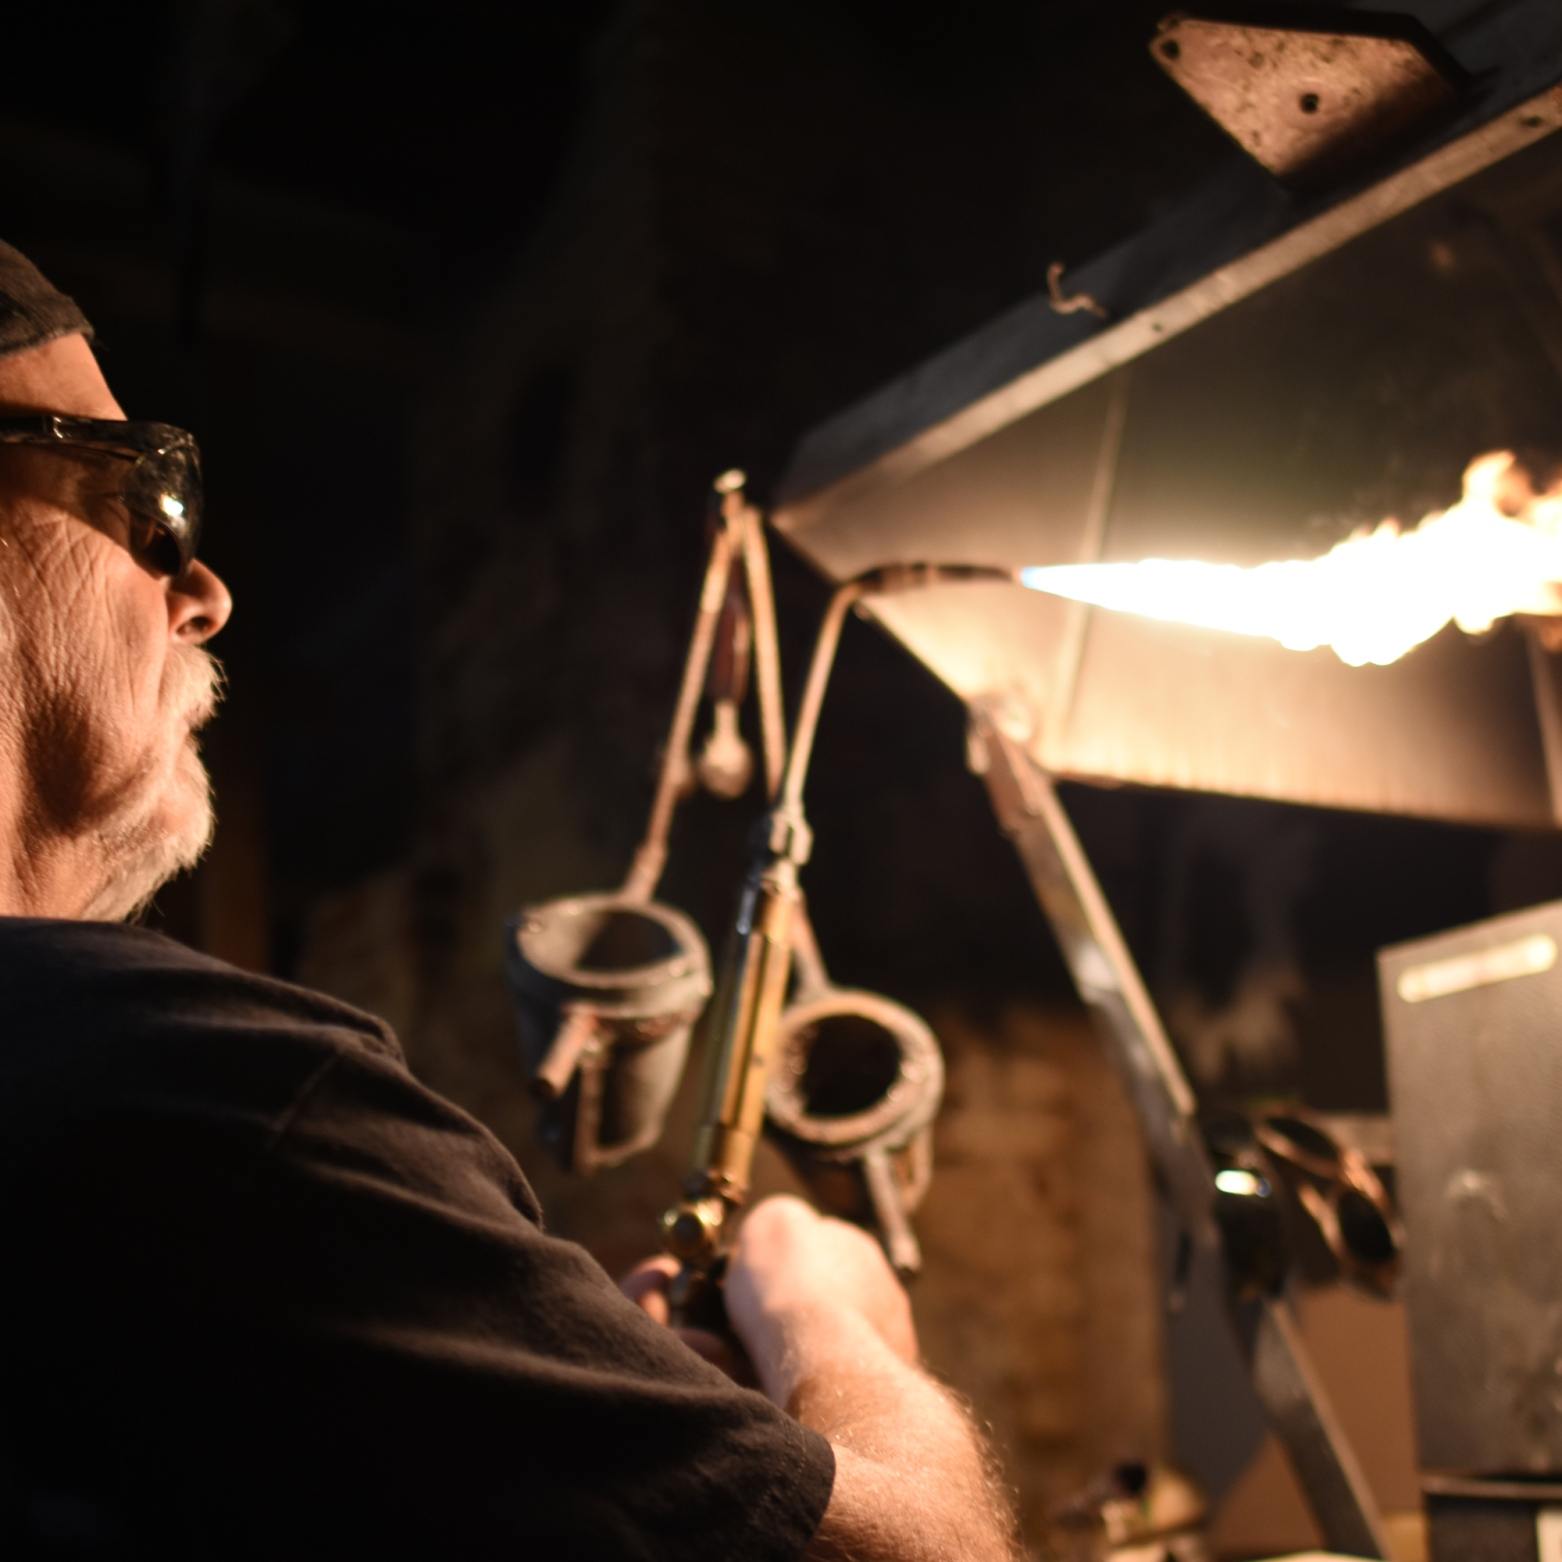 Daniel Macchiarini, owner of jewelry shop Macchiarini Creative Design, uses a propane torch to melt silver into a casting mold at his shop in San Francisco.